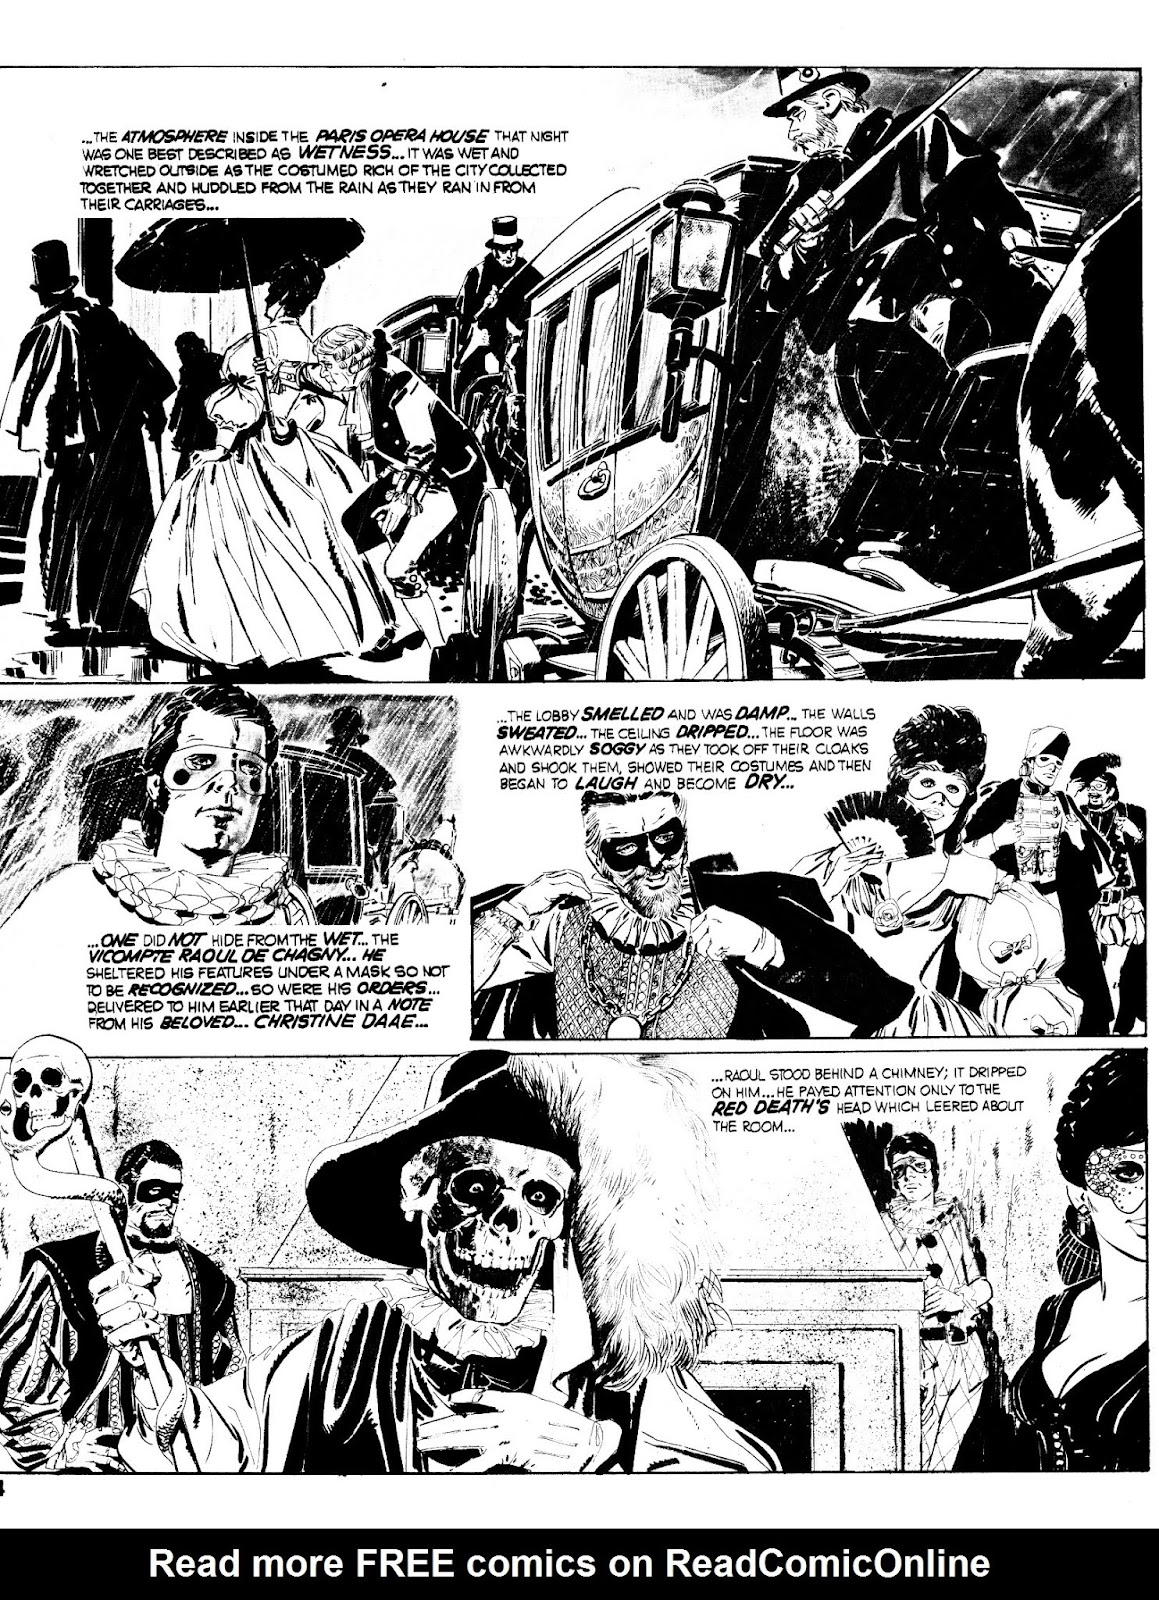 Scream (1973) issue 3 - Page 4